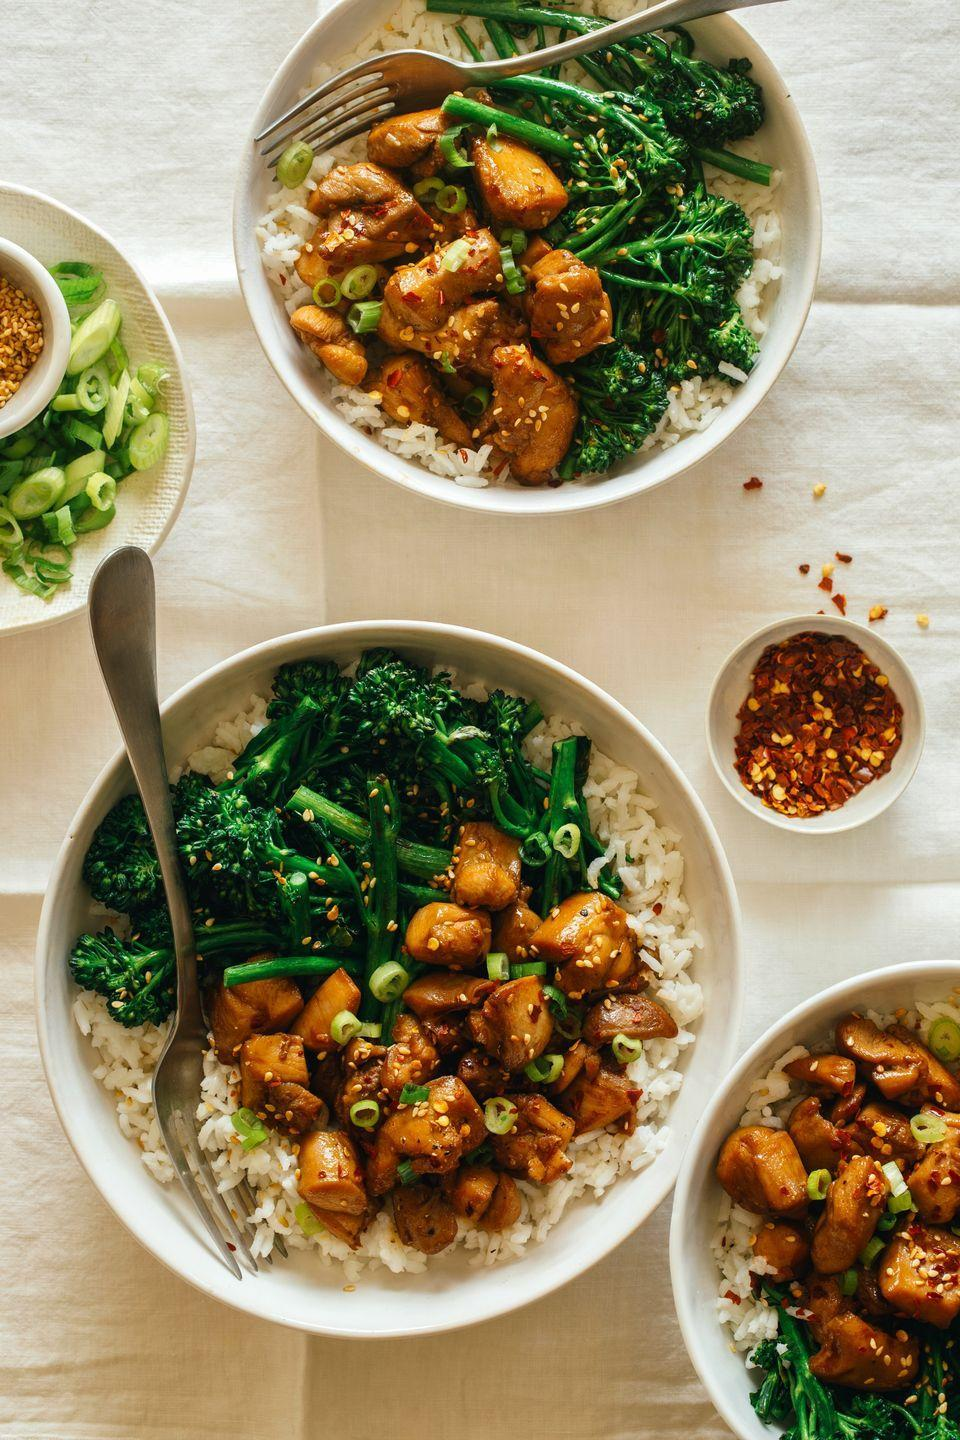 "<p>These dinner bowls will spice up your Tuesday night.</p><p>Get the recipe from <a href=""https://www.delish.com/cooking/recipe-ideas/recipes/a52520/spicy-chicken-teriyaki-bowls-recipe/"" rel=""nofollow noopener"" target=""_blank"" data-ylk=""slk:Delish"" class=""link rapid-noclick-resp"">Delish</a>.</p>"